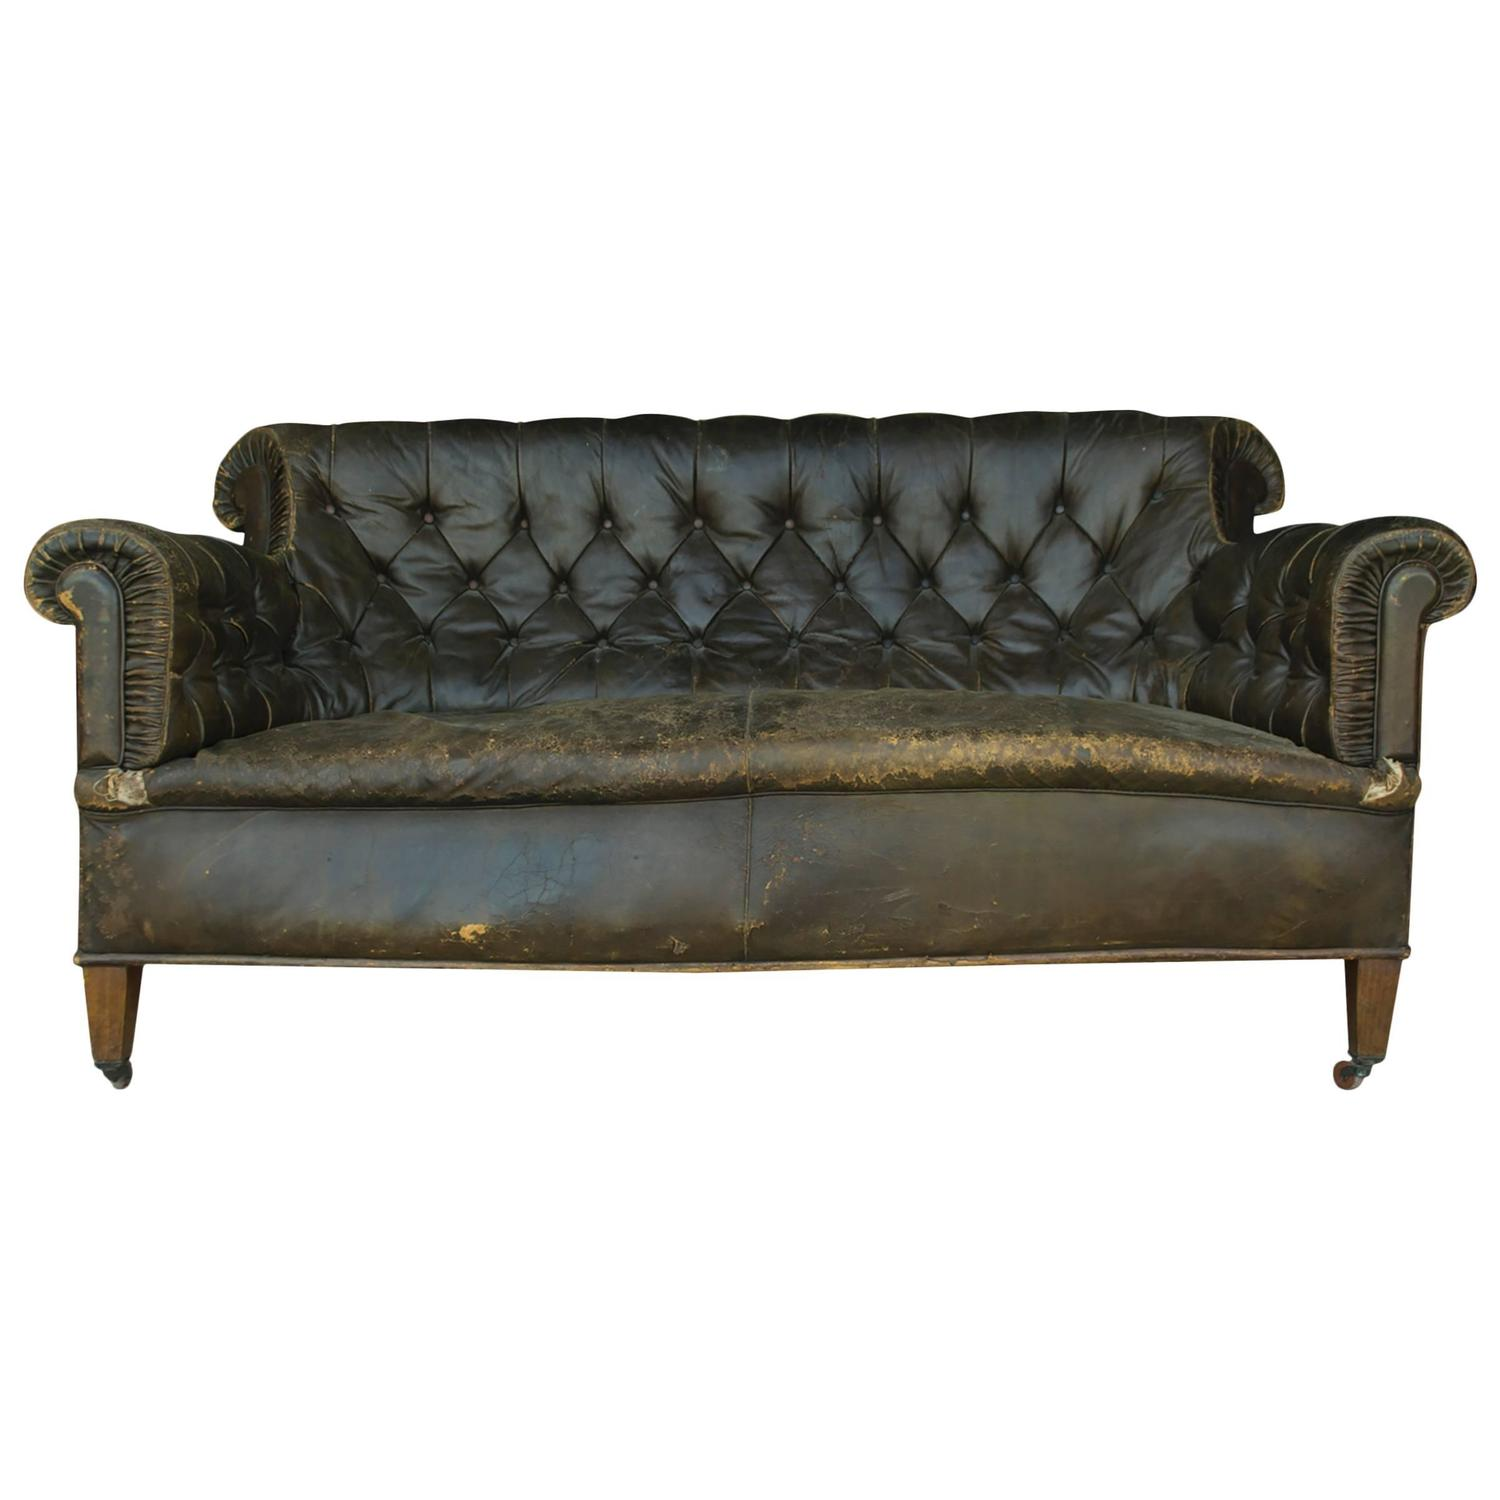 Vintage Leather Chesterfield Sofa For Sale at 1stdibs